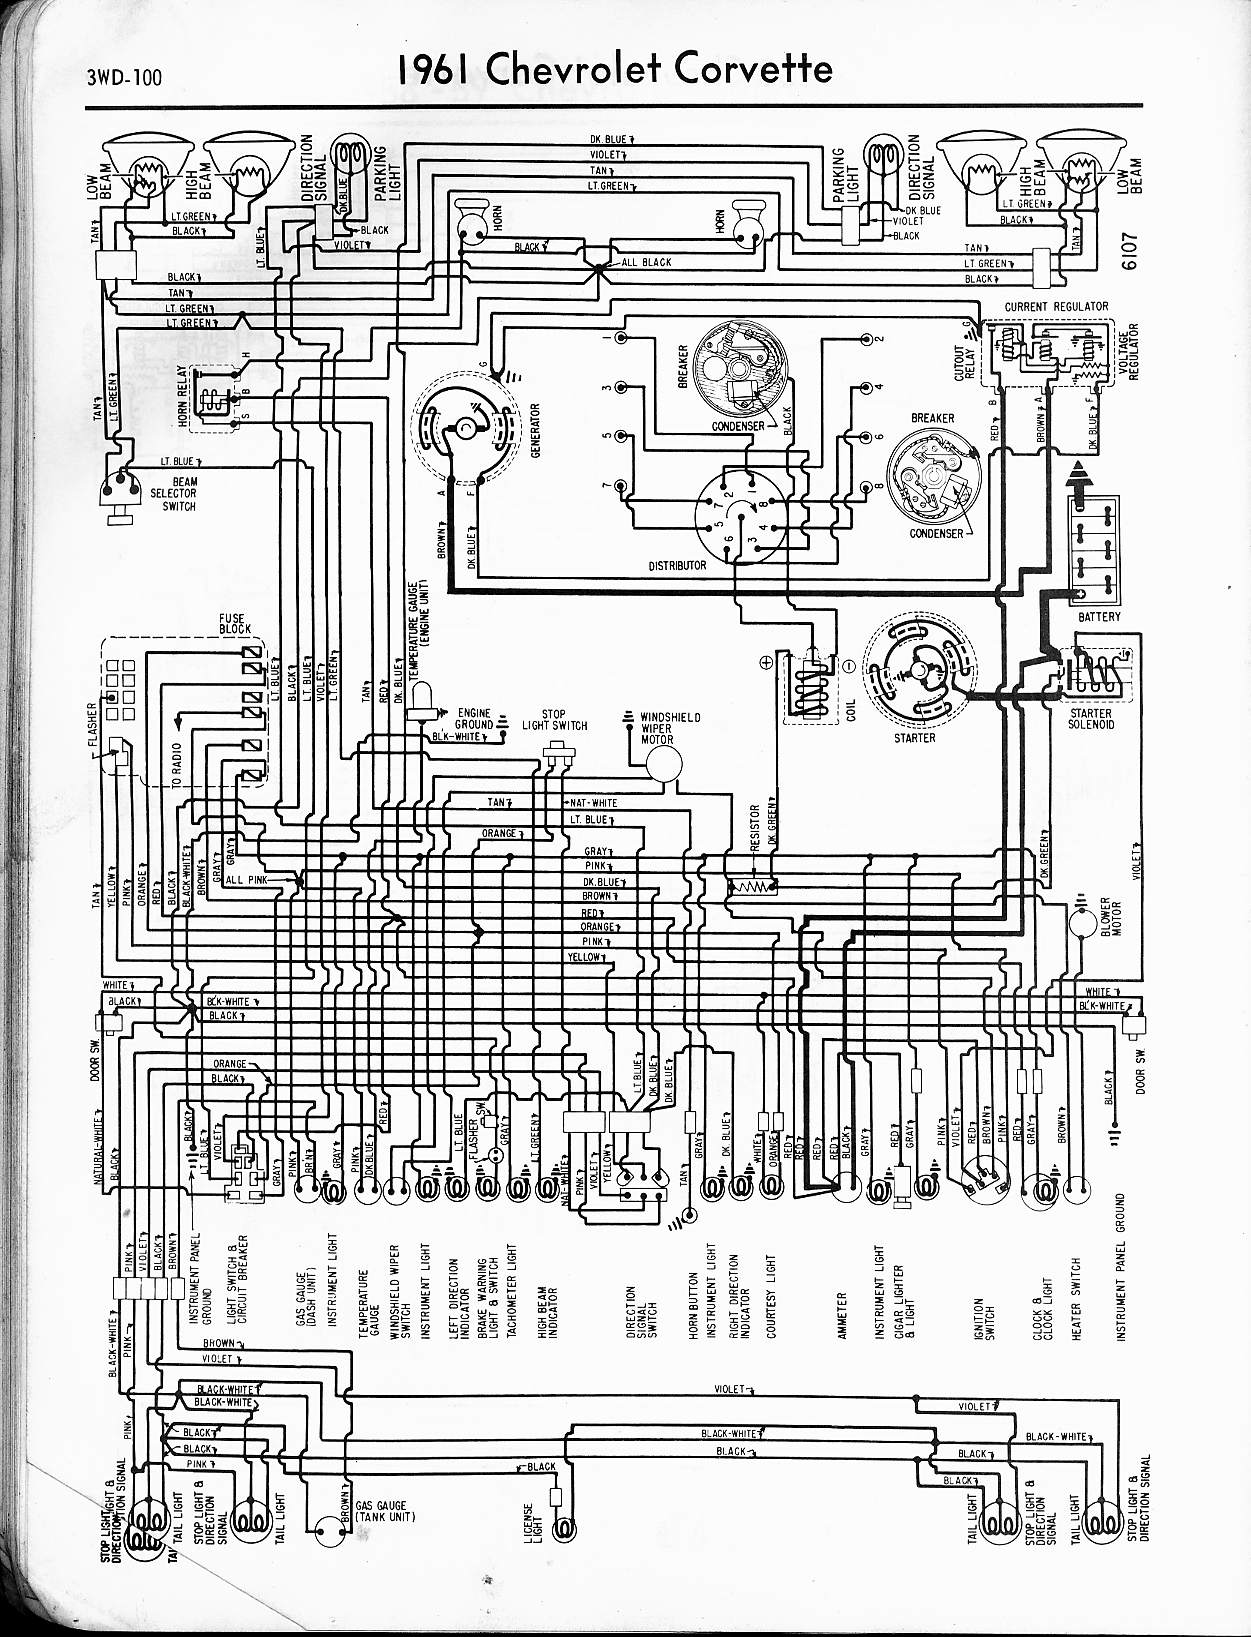 MWireChev61_3WD 100 57 65 chevy wiring diagrams 1962 impala wiring diagram at honlapkeszites.co